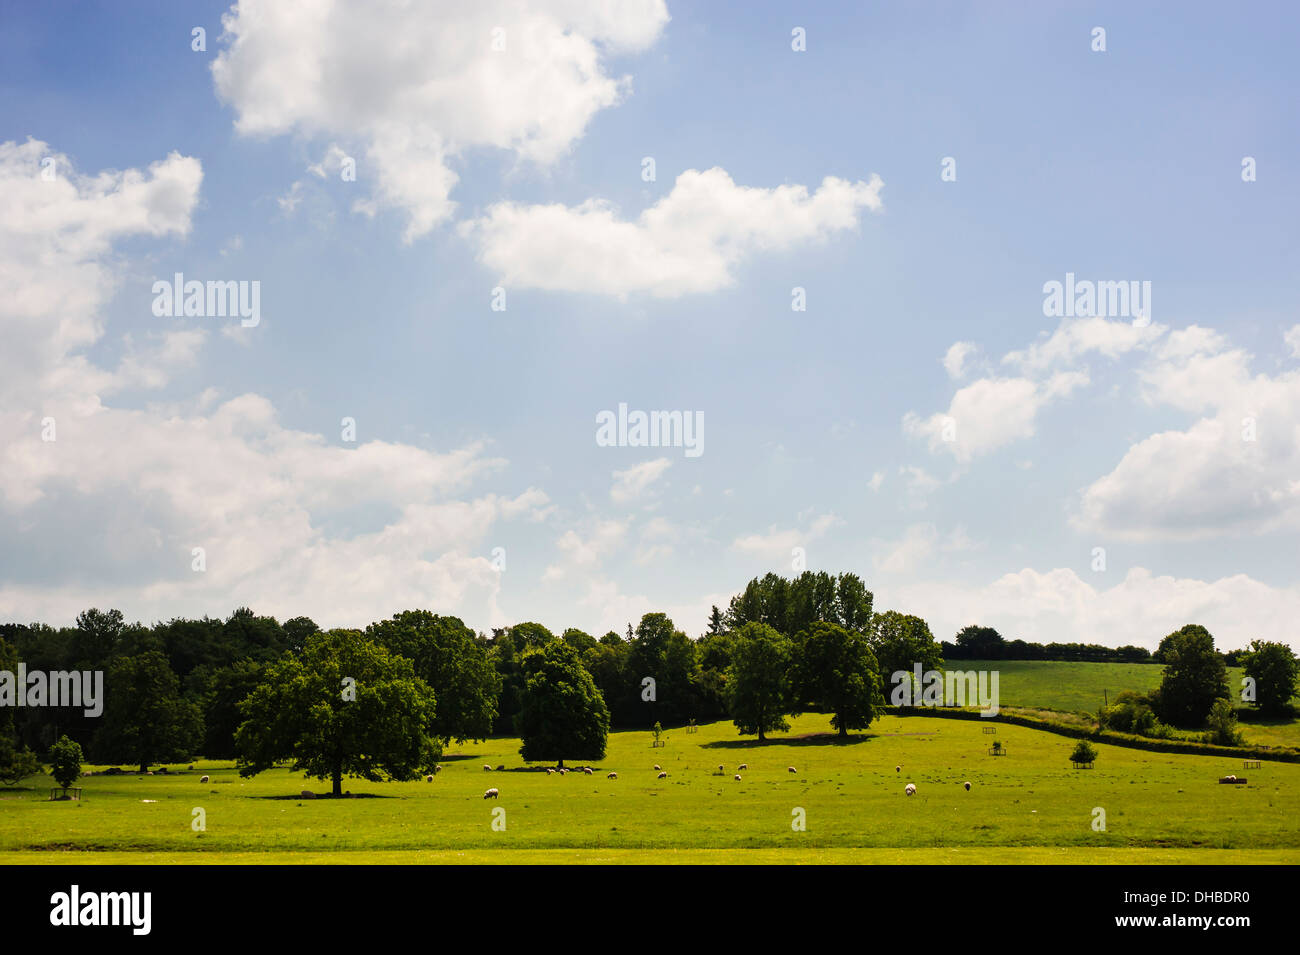 Meadow, view across typical English country landscape. - Stock Image